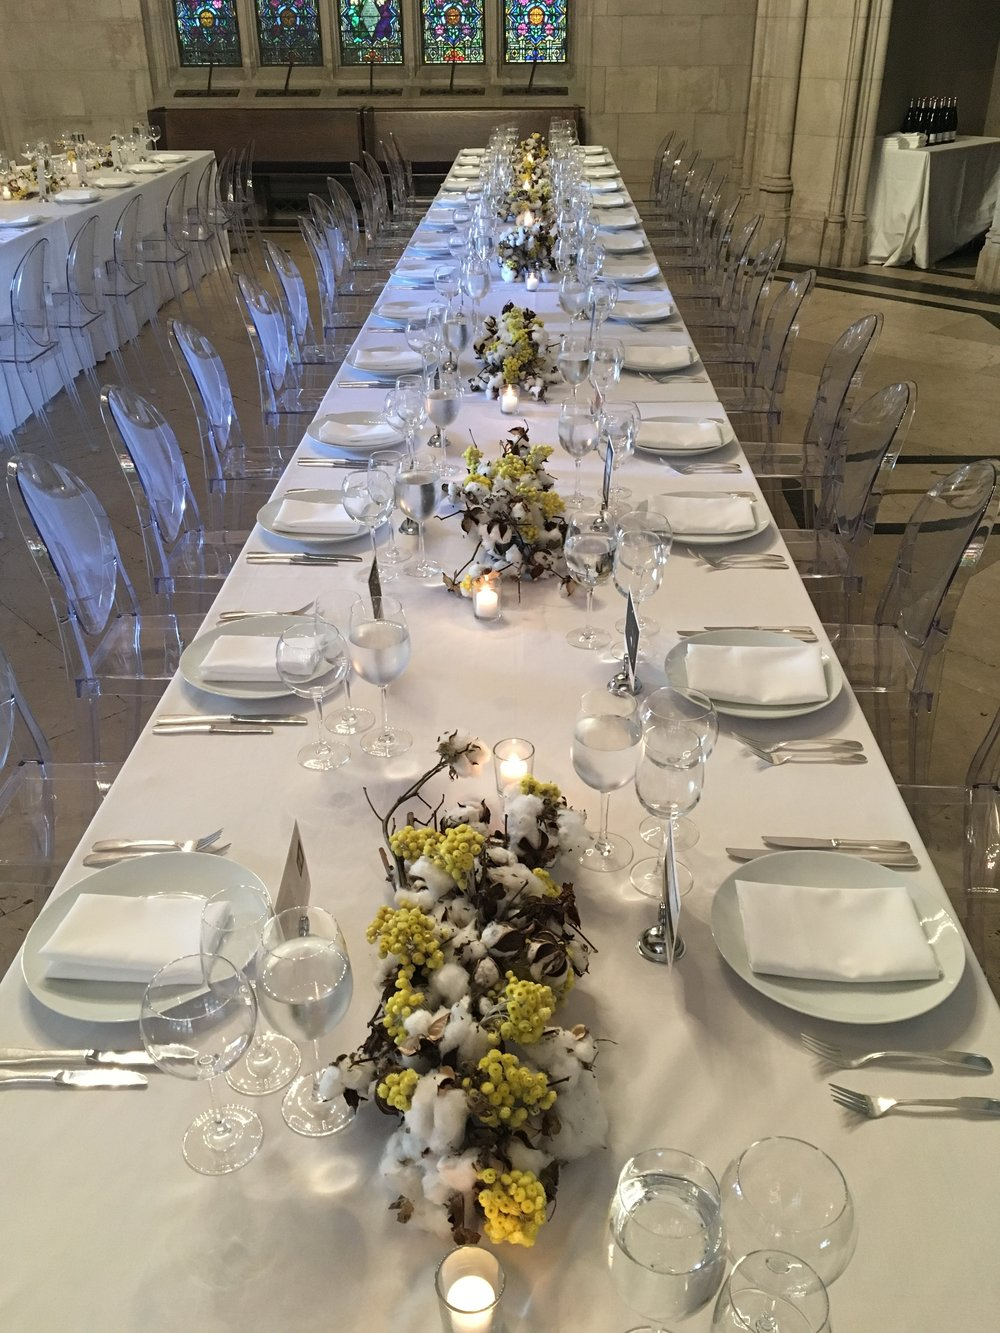 Sophie Calle Dinner with Galerie Perrotin